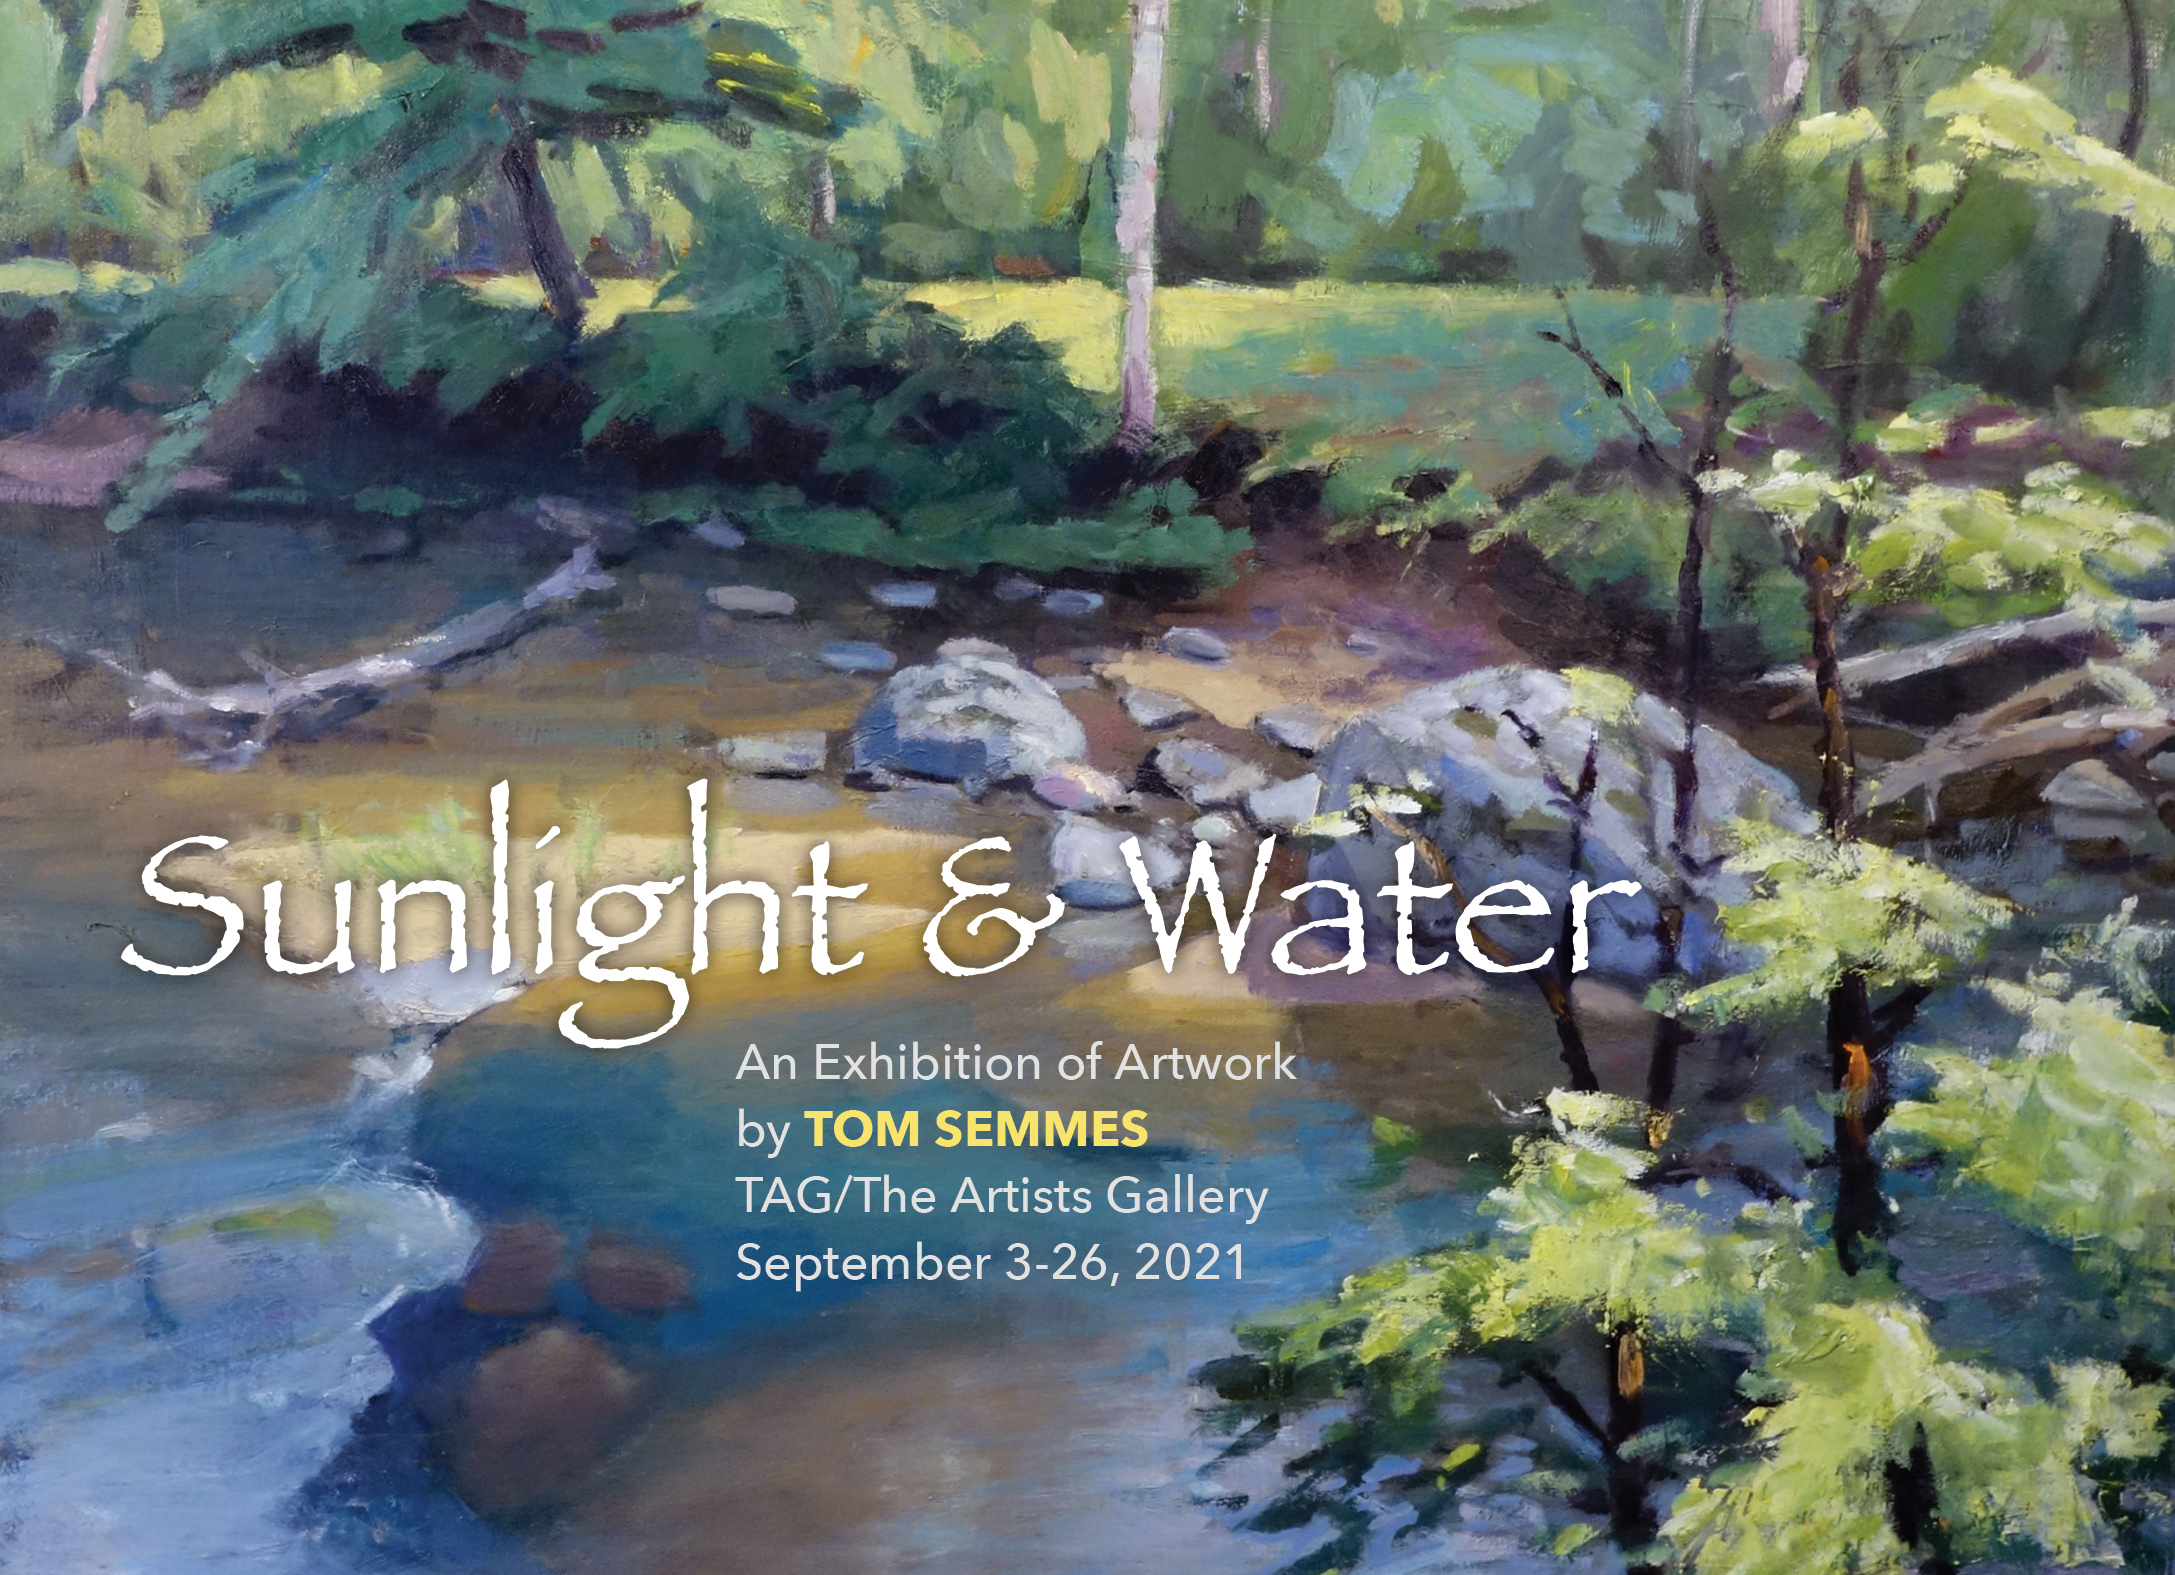 An invitation to Sunlight & Water, an exhibition of artwork by Tom Semmes